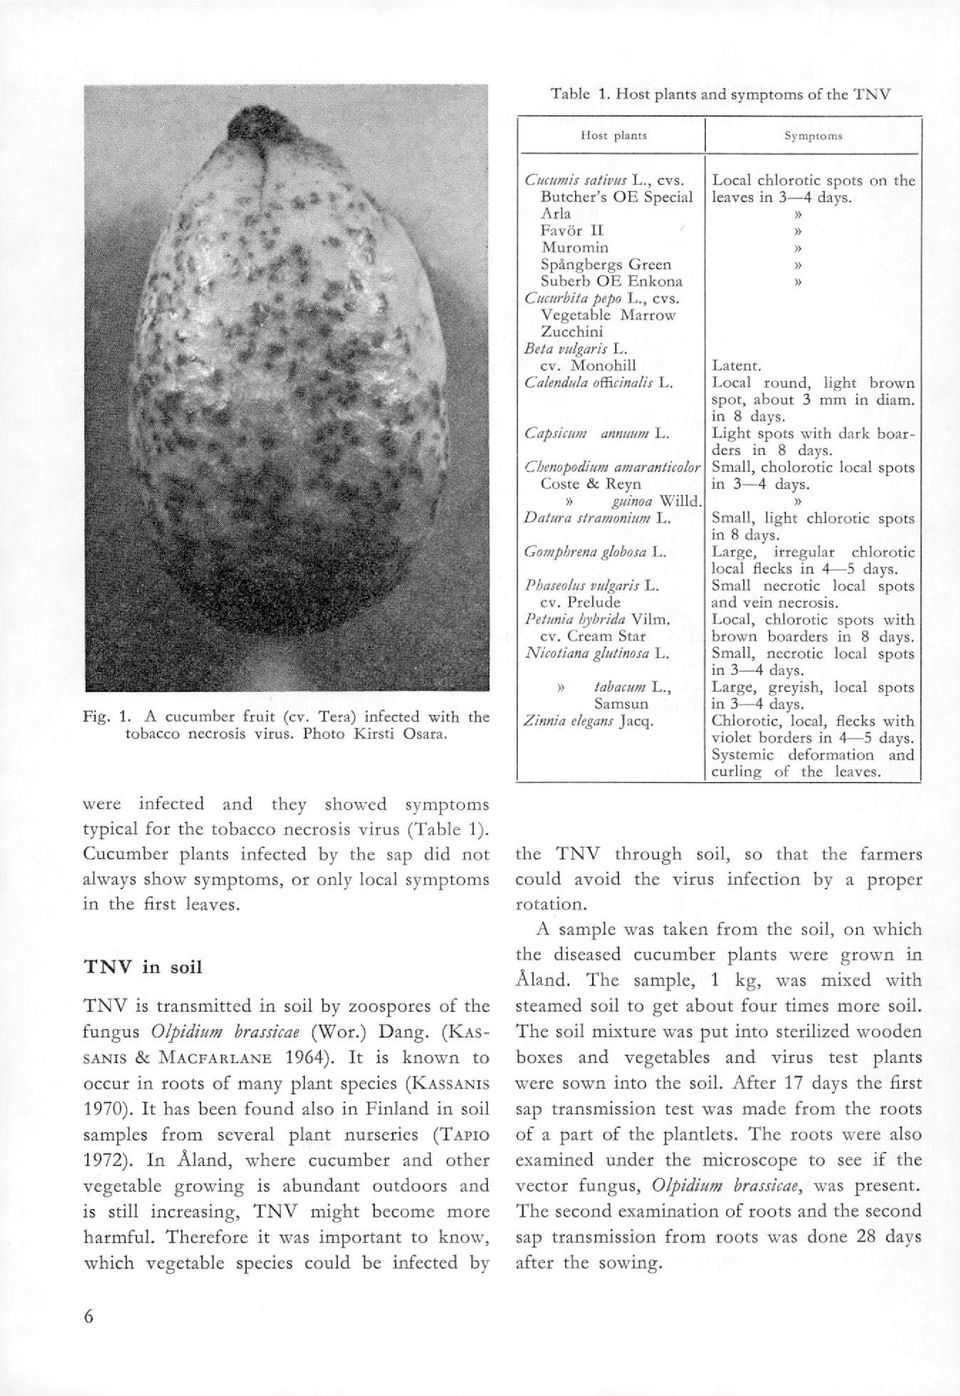 TNV in soi! TNV is transmitted in soil by zoospores of the fungus Olpidium brassicae (Wor.) Dang. (ICAs- SANIS & MACFARLANE 1964). It is known to occur in roots of many plant species (KAssANis 1970).